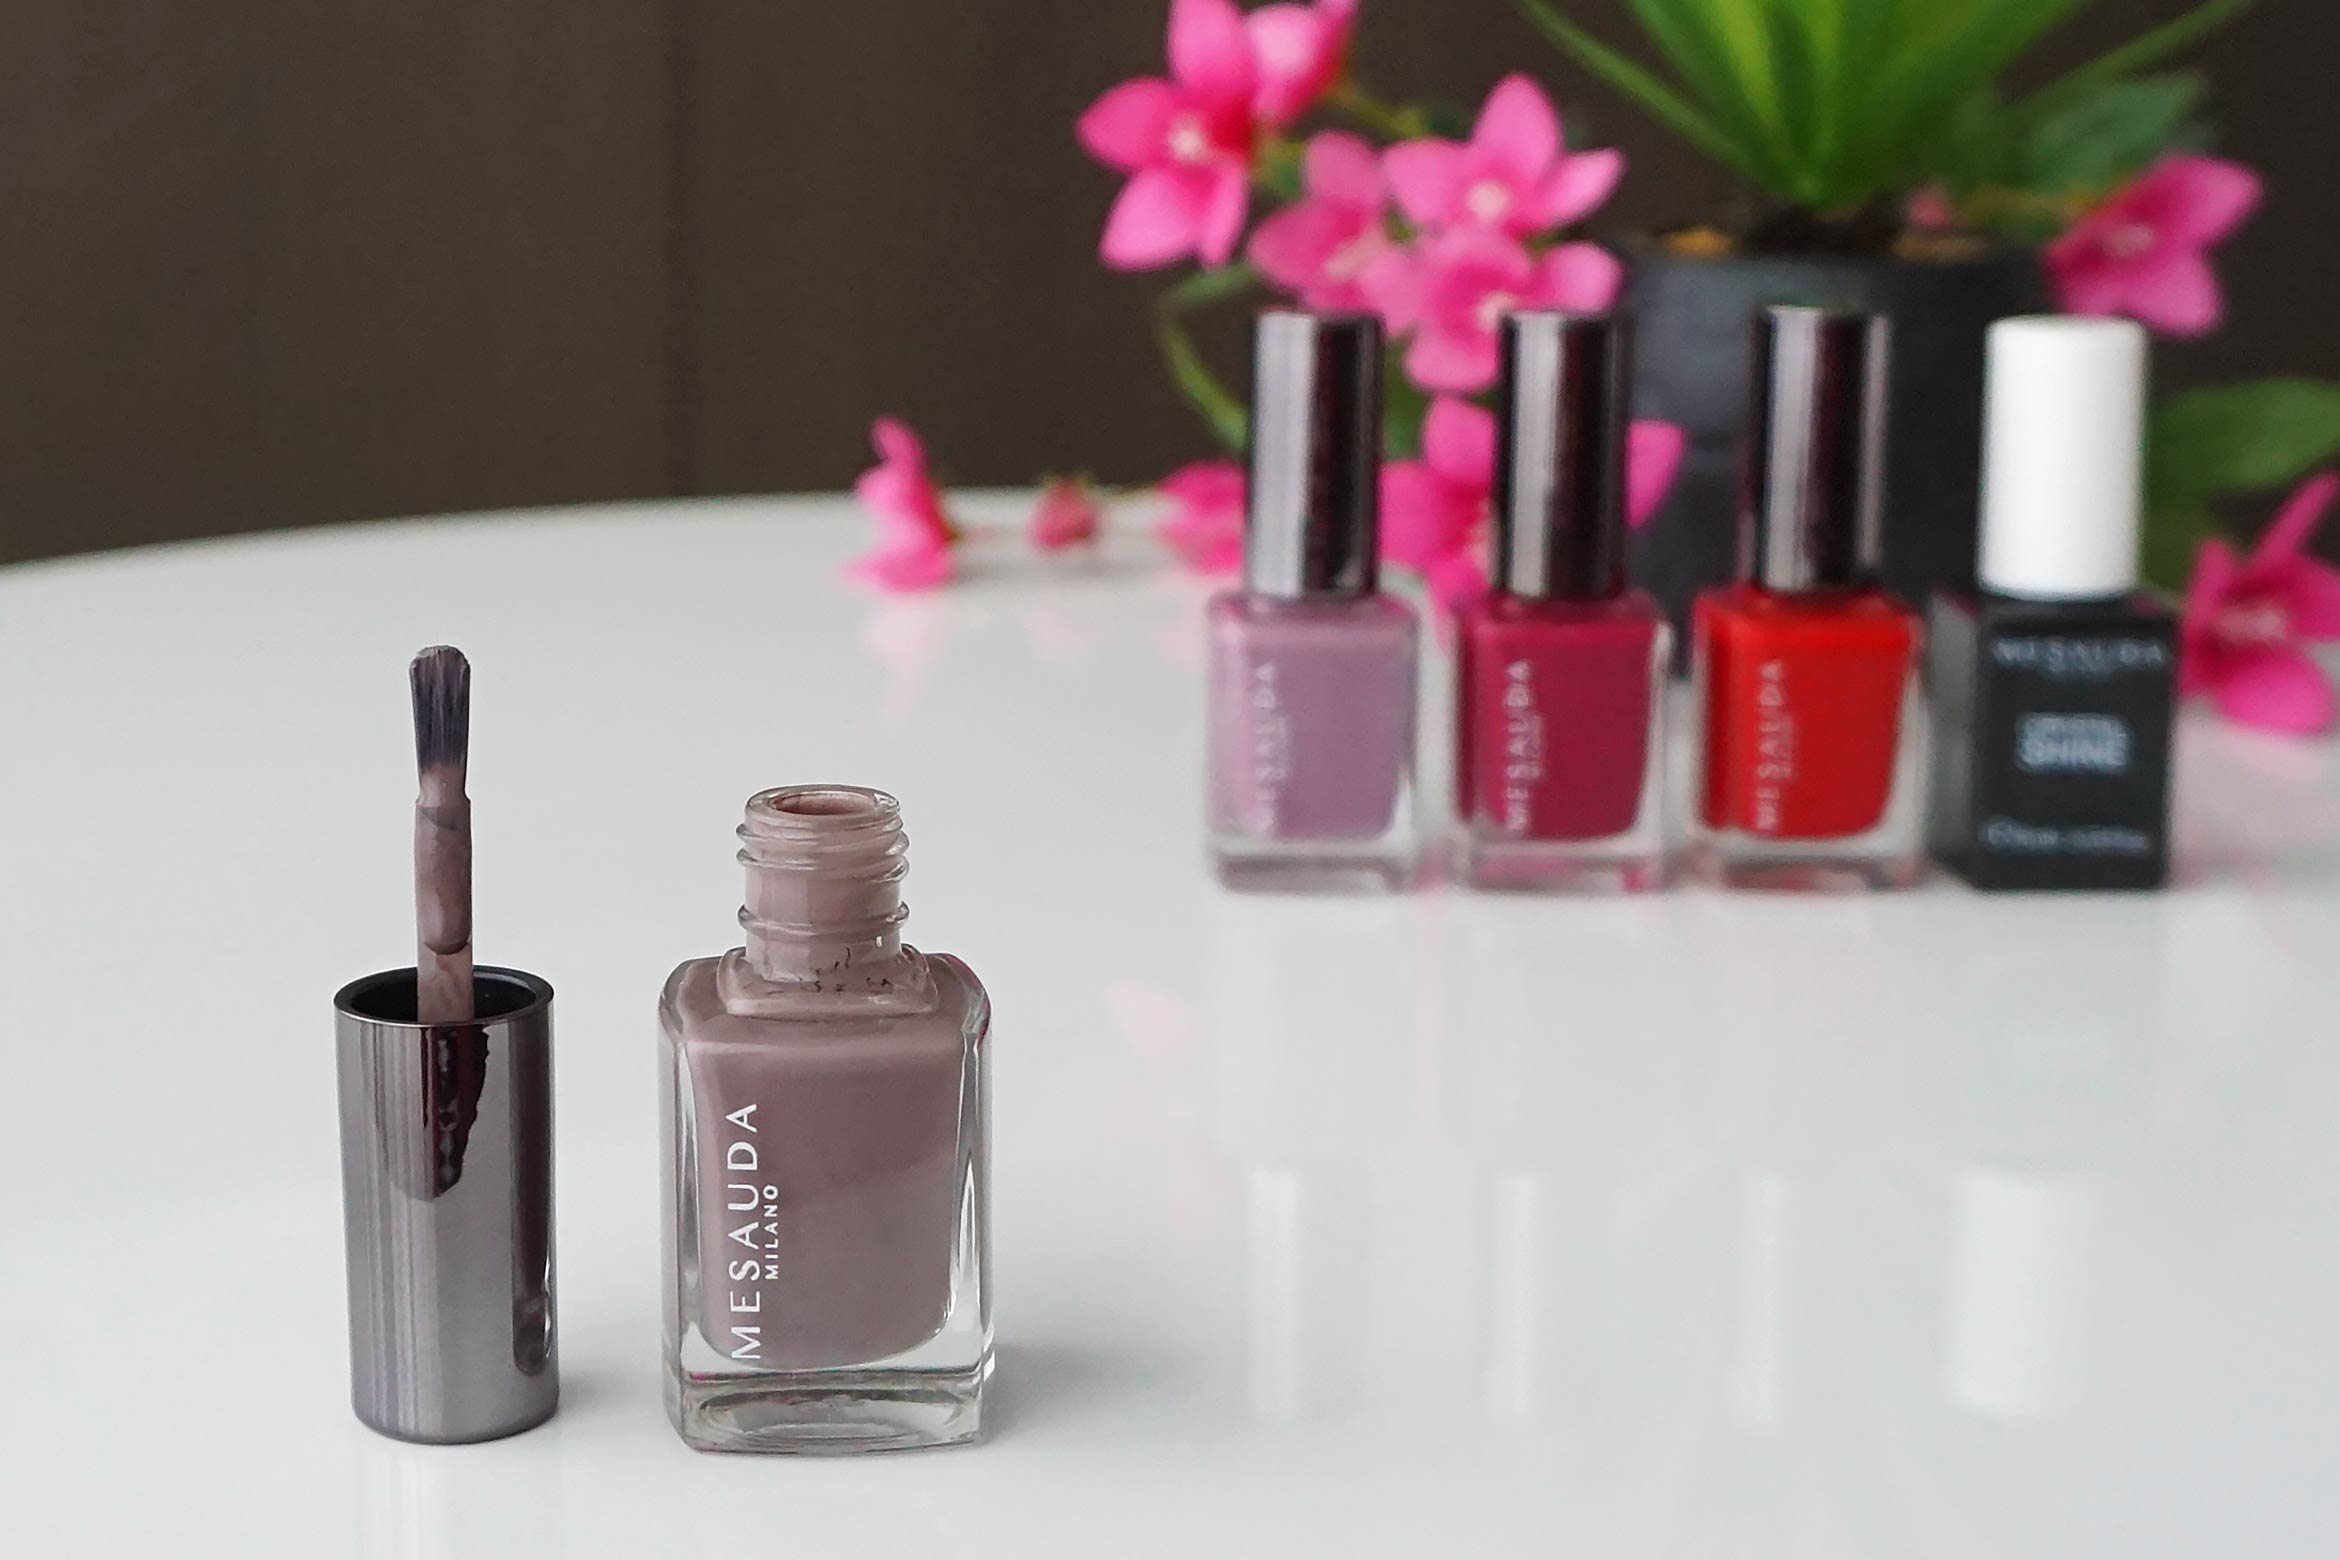 mesauda-milano-crystal-glaze-nail-polish-review-2